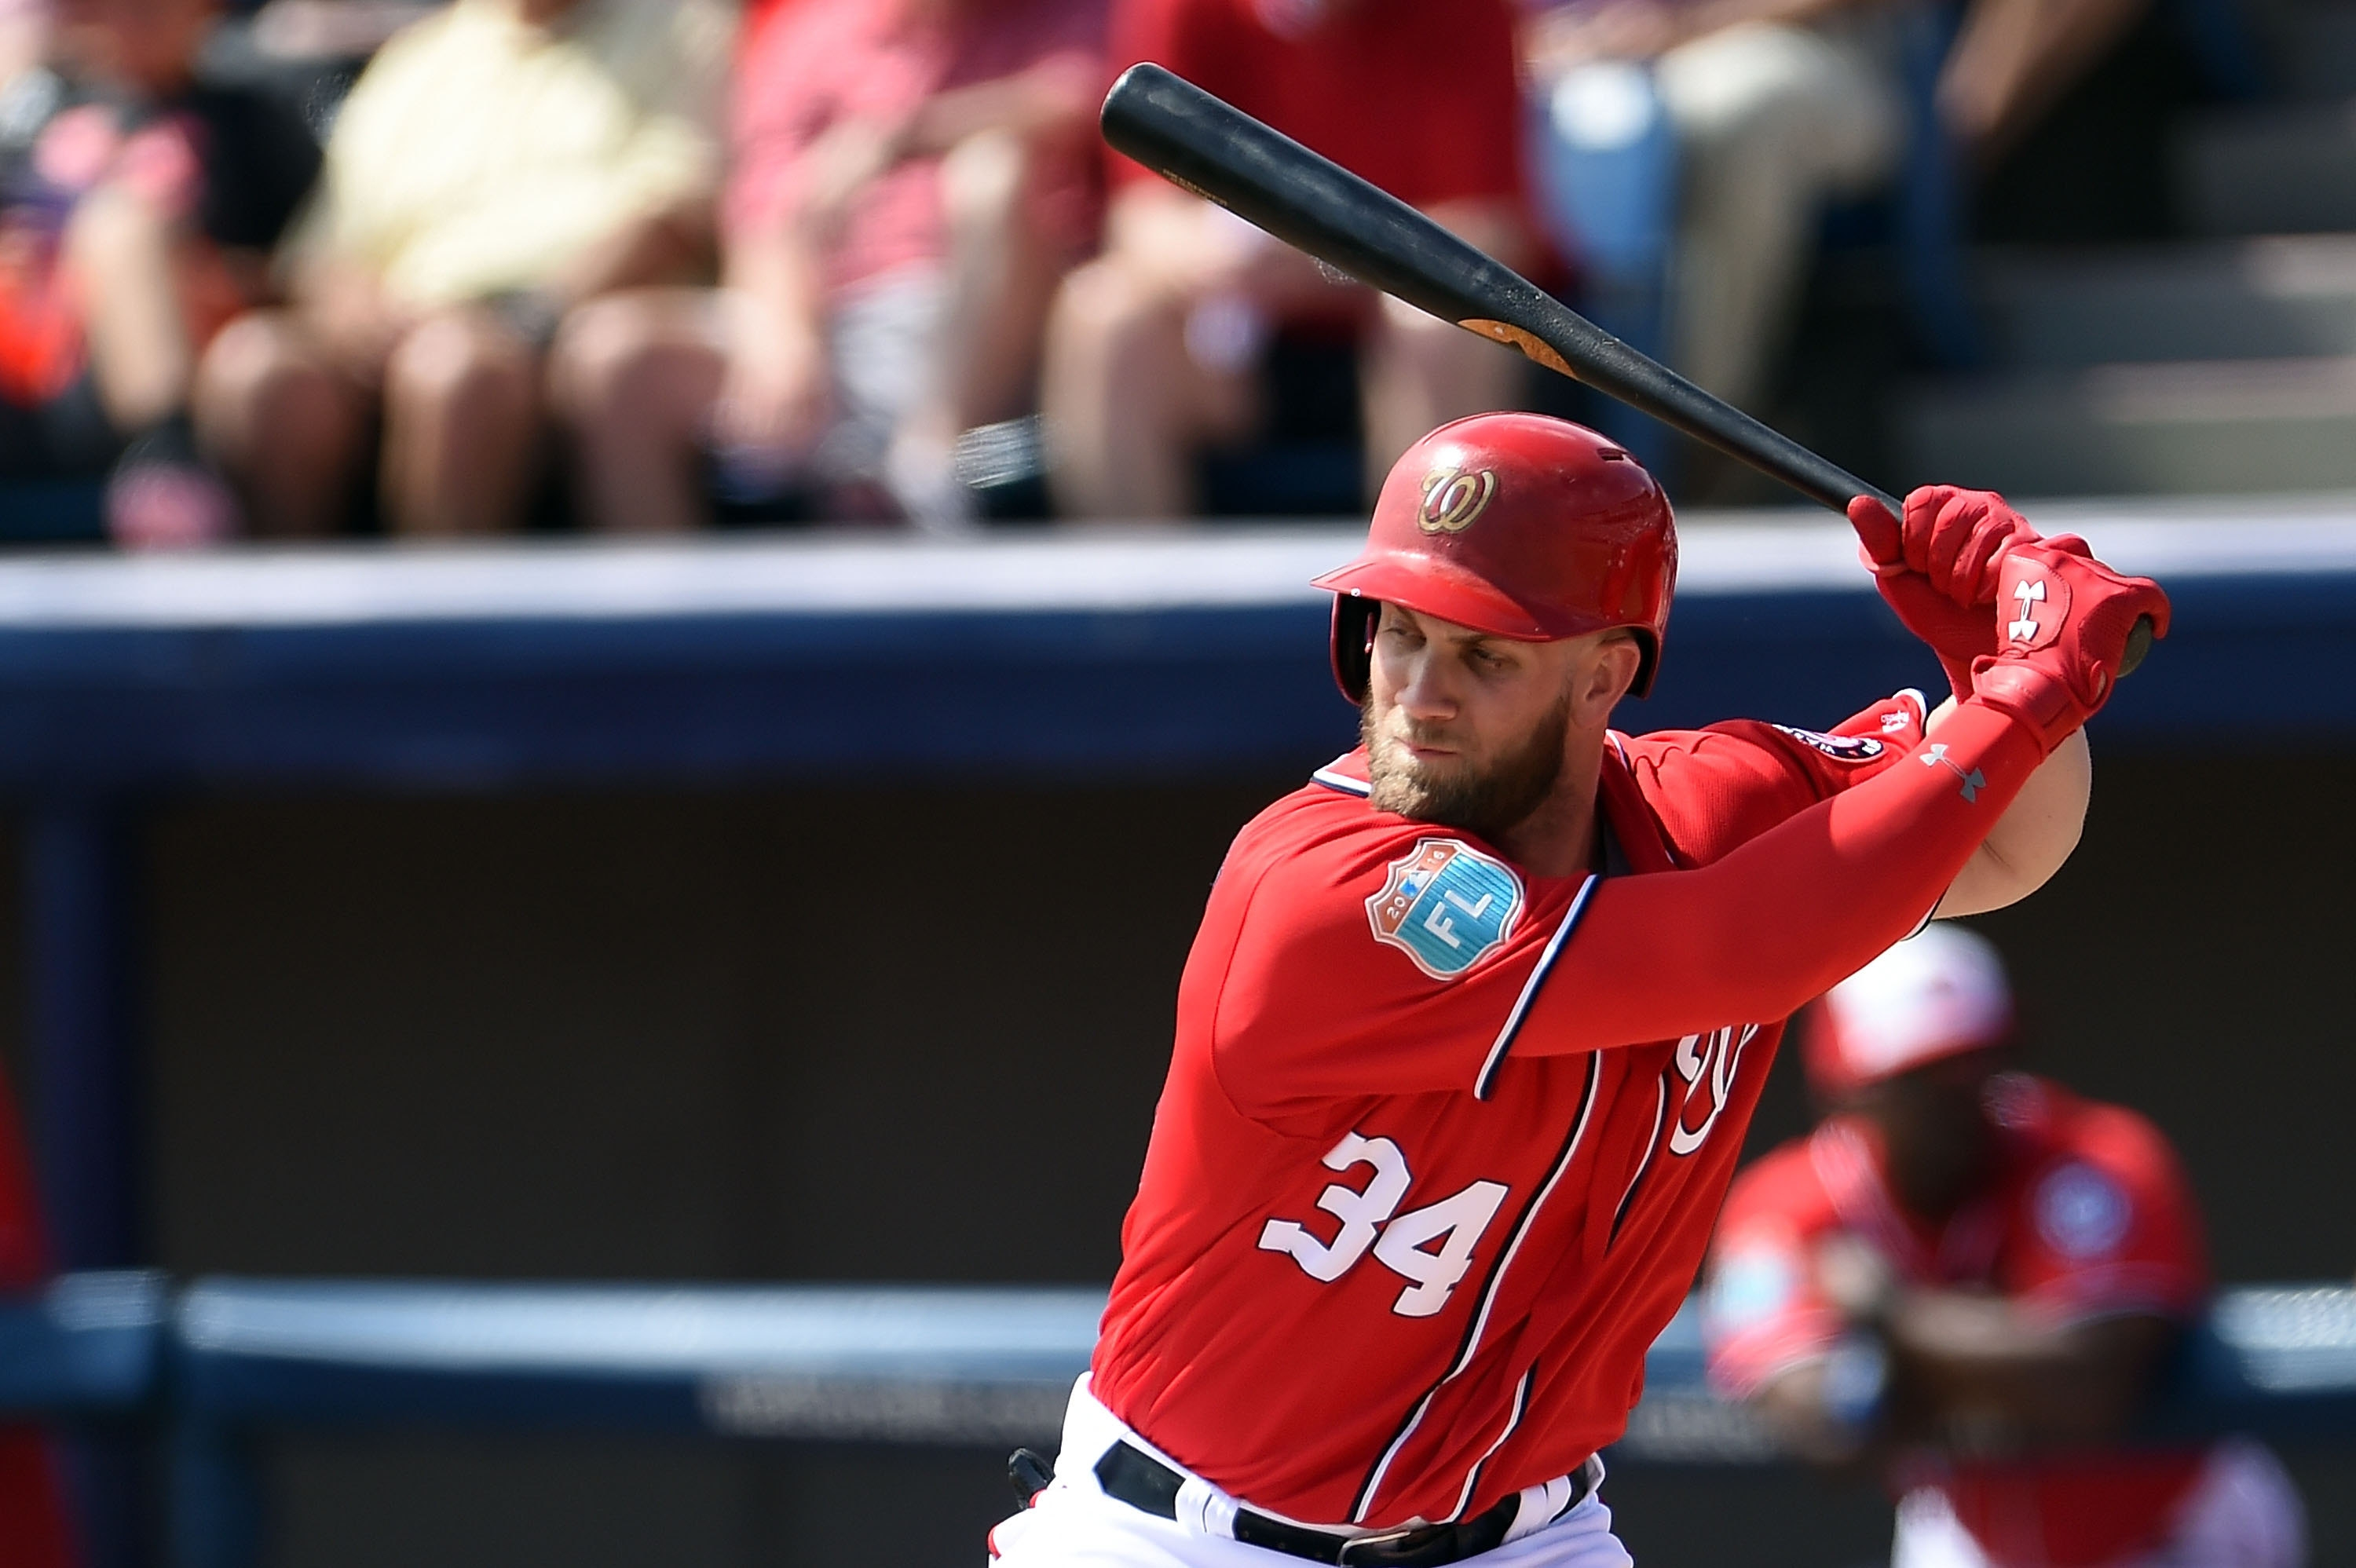 Bryce Harper of the Washington Nationals, only 23, is the reigning National League Most Valuable Player.